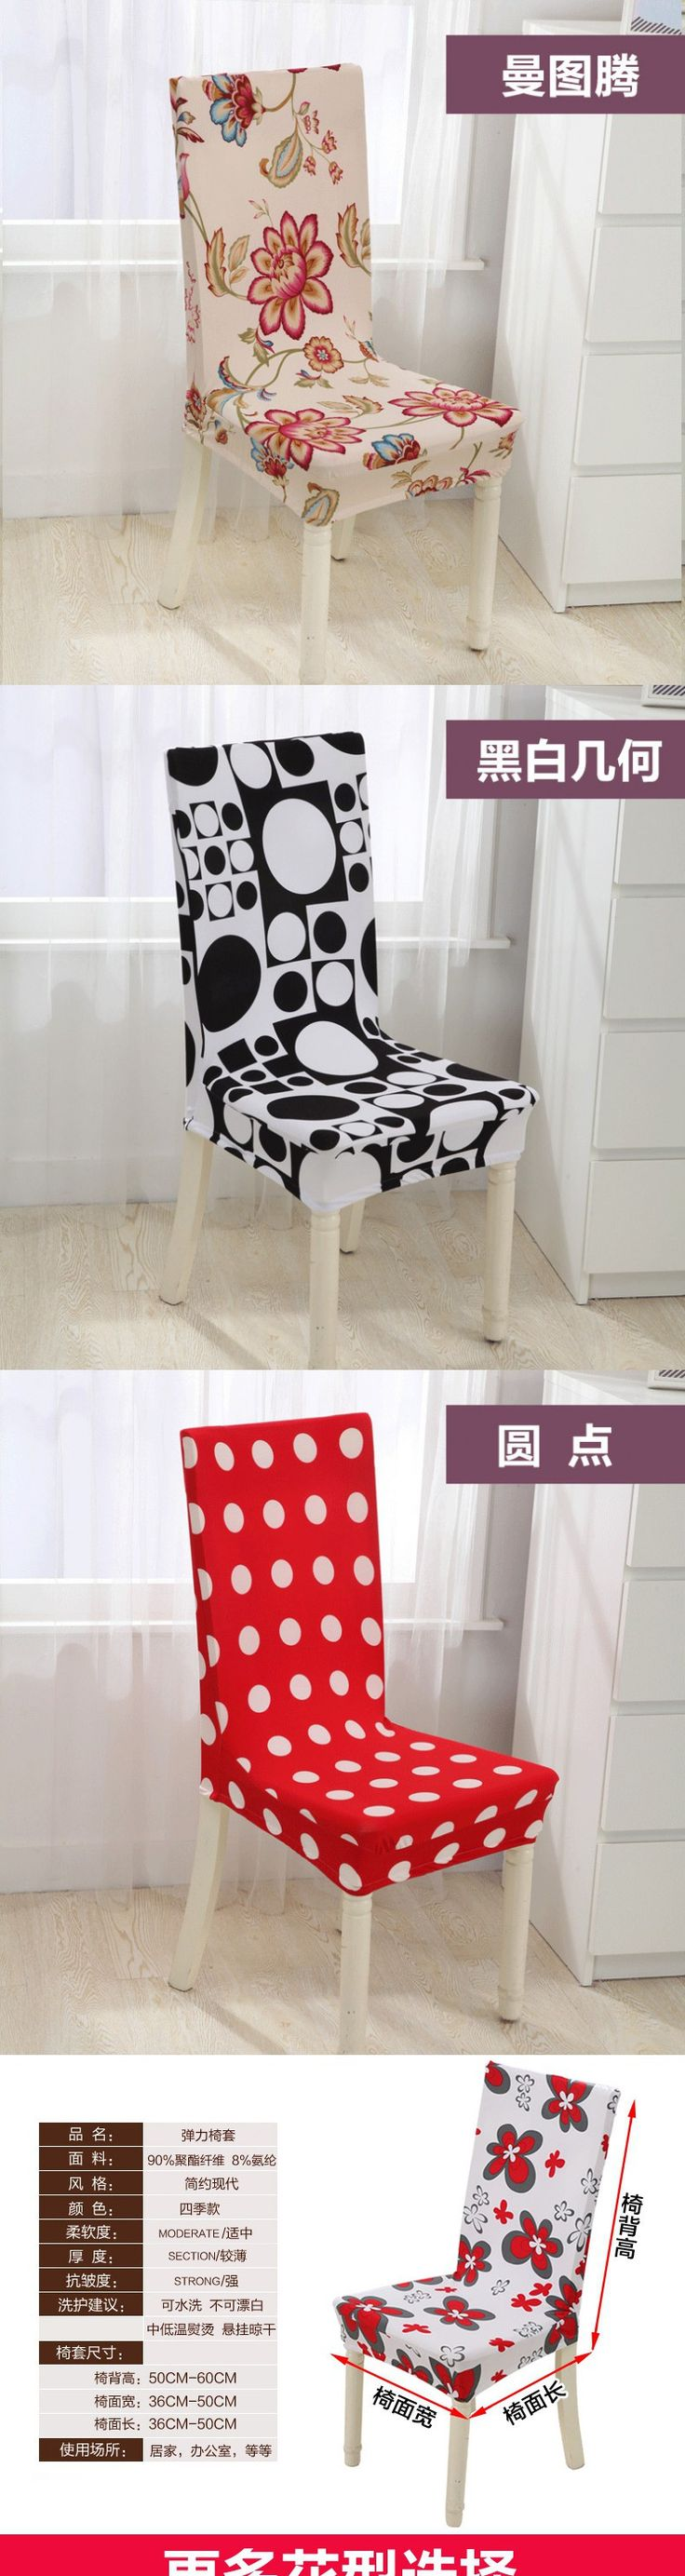 Home decoration dinning chair covers wholesale cheap Spring flower stretch chair covers spandex dining room chair covers $2.99